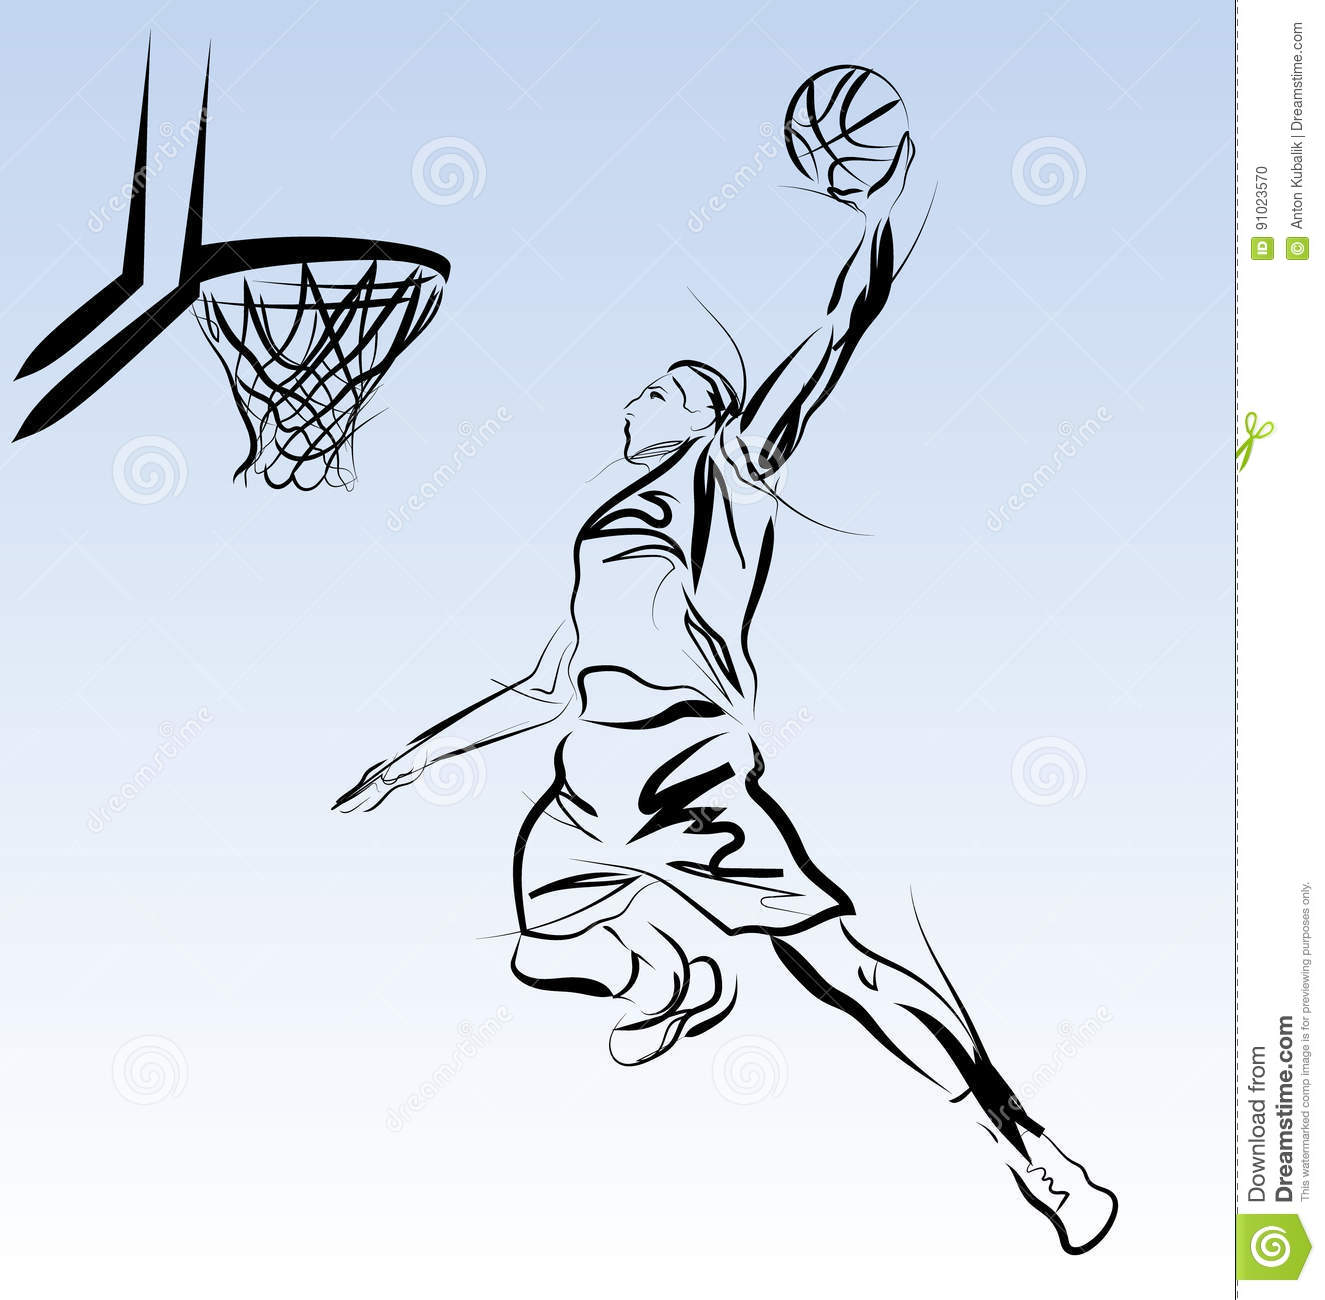 Vector Line Sketch Of A Basketball Player Stock Vector - Image 91023570